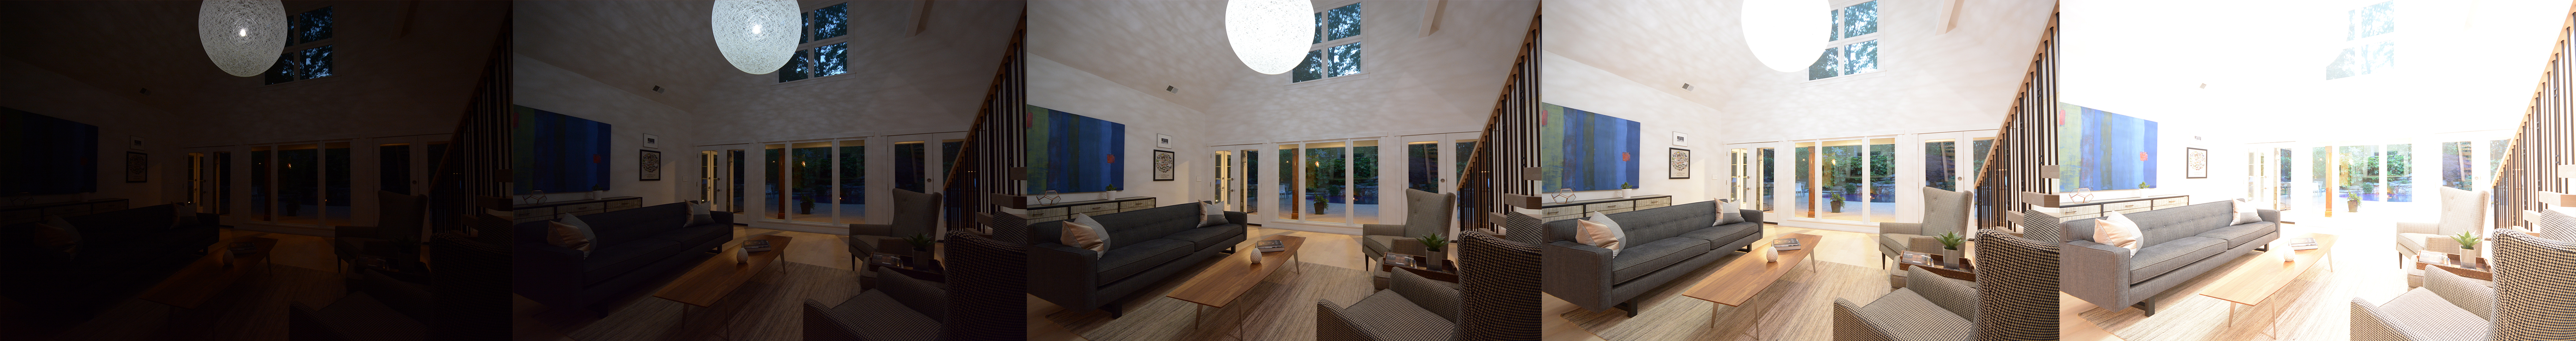 Real estate photography without flash using photo bracketing by virtuance